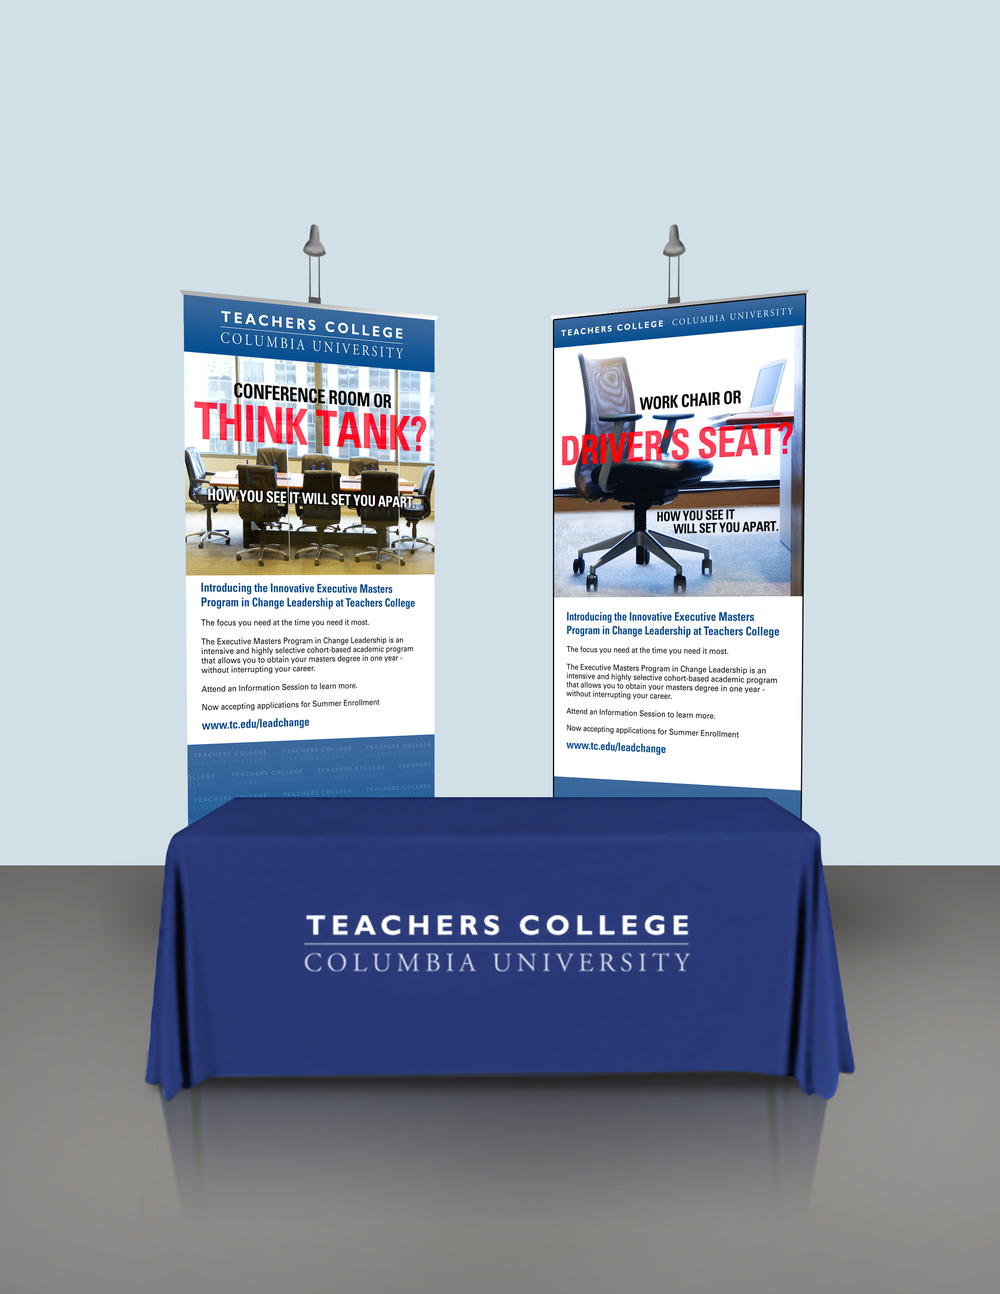 teacherscollegeexhibition1.jpg